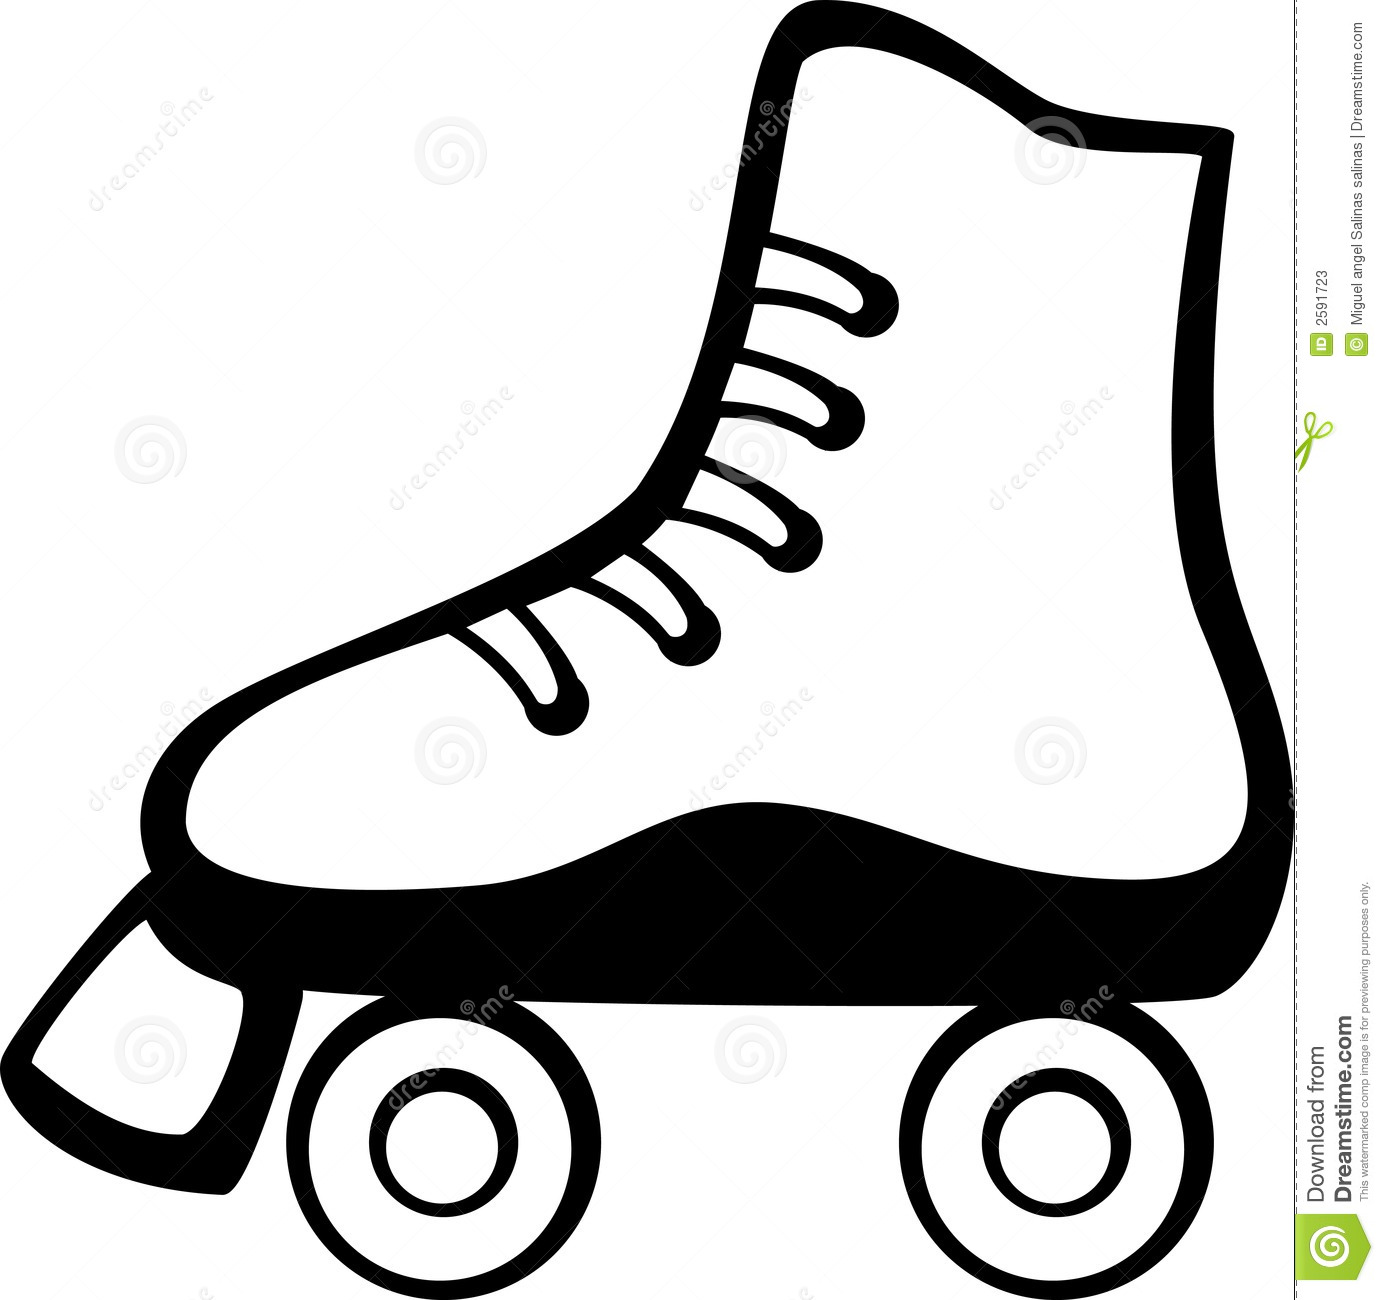 roller skating silhouette at getdrawings com free for personal use rh getdrawings com roller skate clip art free roller skates clipart images